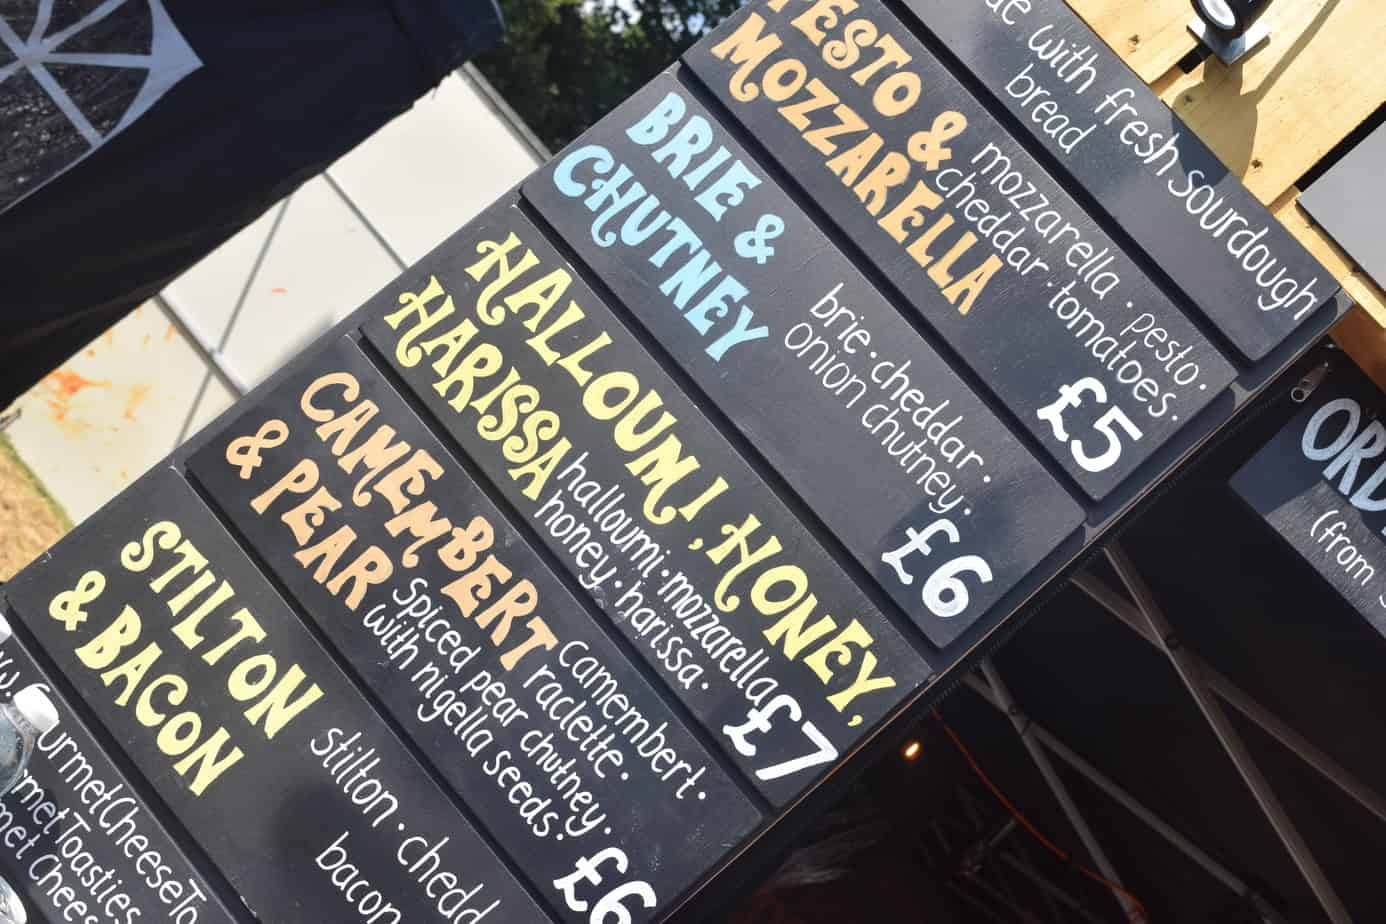 food stall menu a solihull summer fest